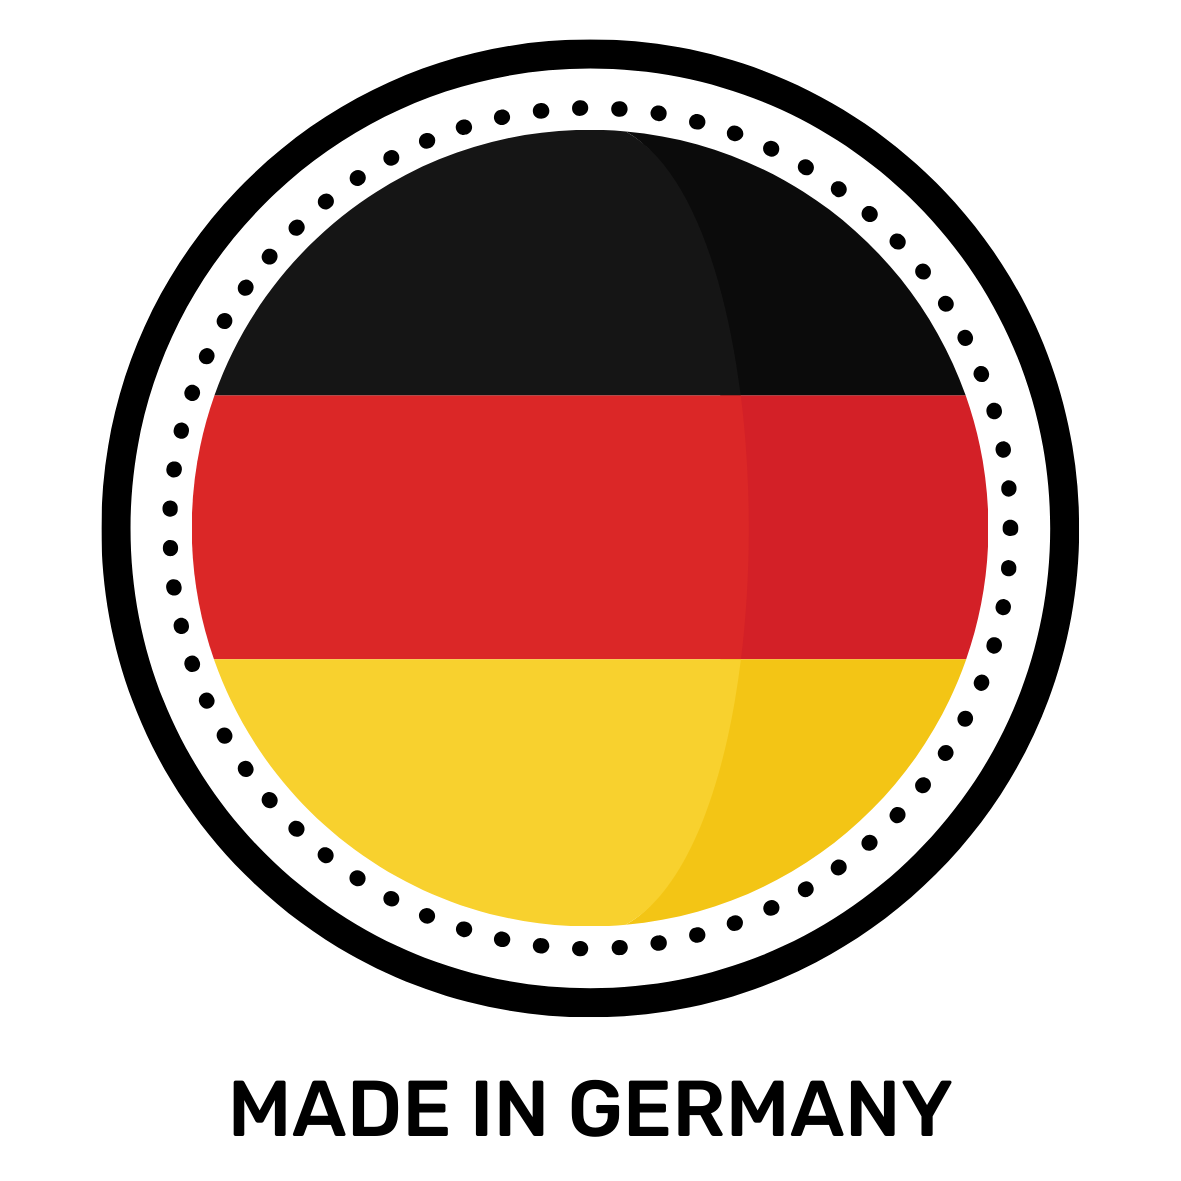 Origine germany